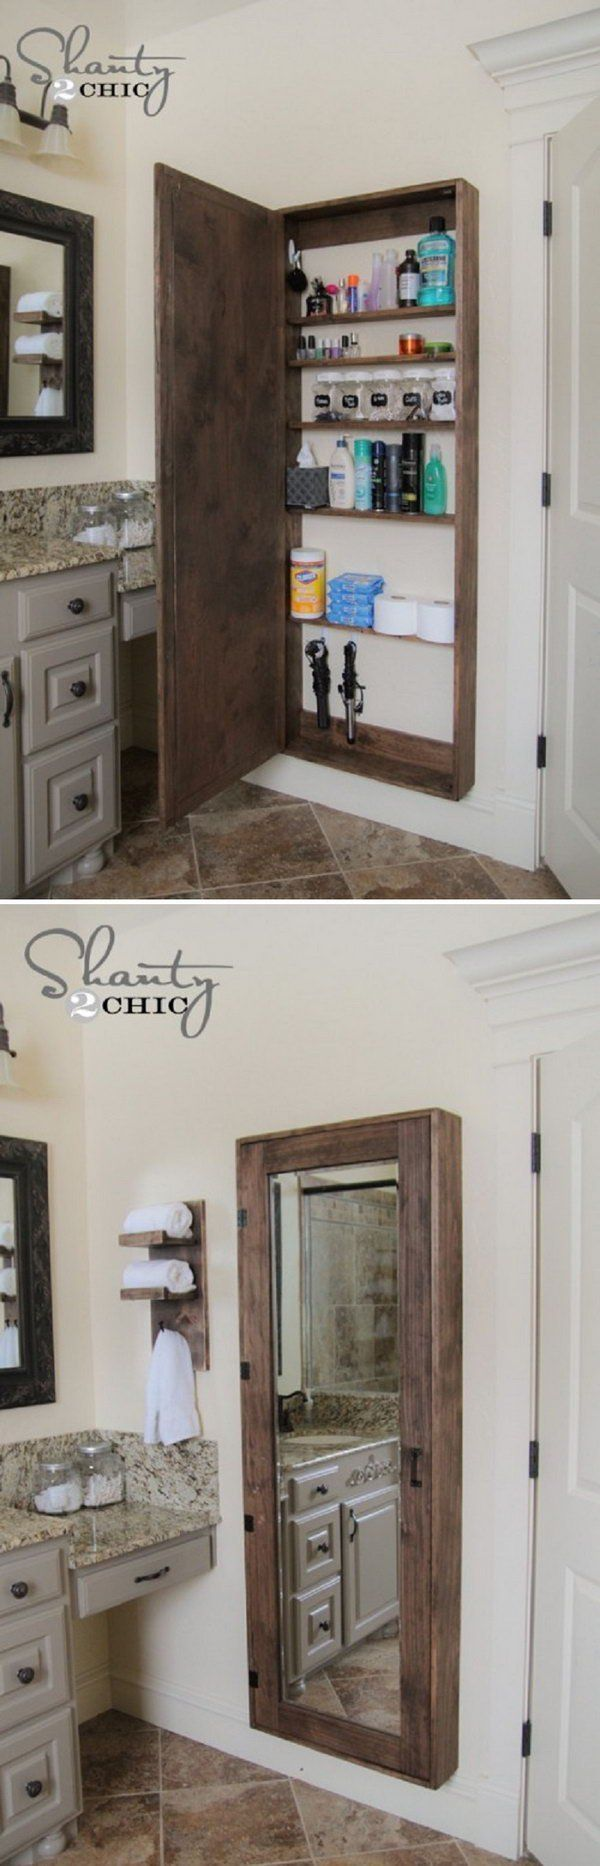 9 Wall Storage Ideas That You Need To Try: Best 20+ Small Space Stairs Ideas On Pinterest